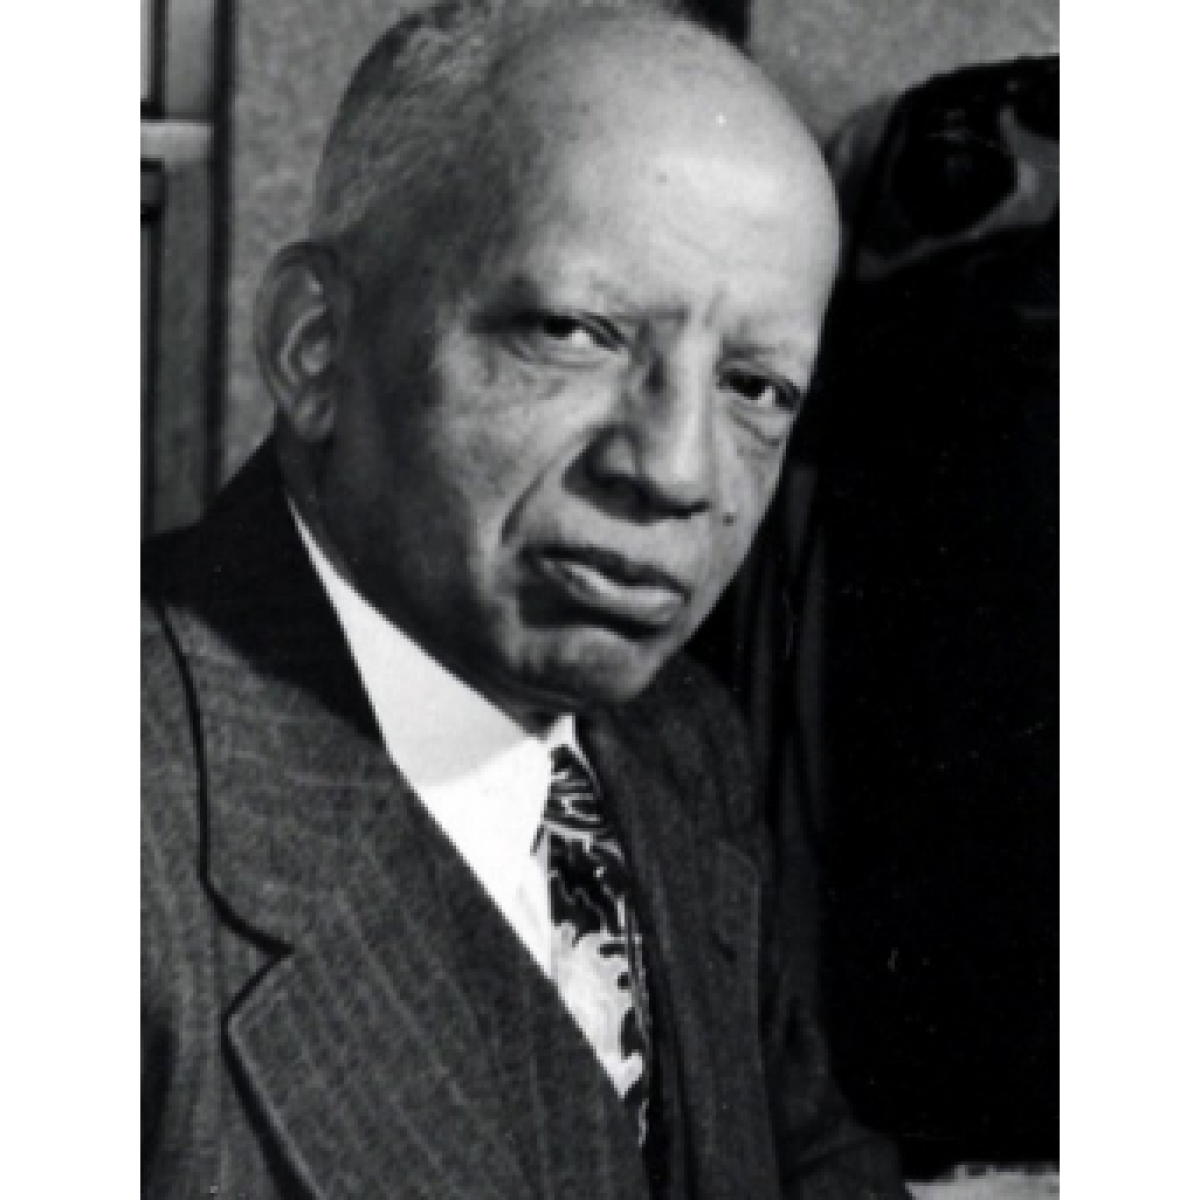 Dr Carter G Woodson The Father Of Black History Has Strong